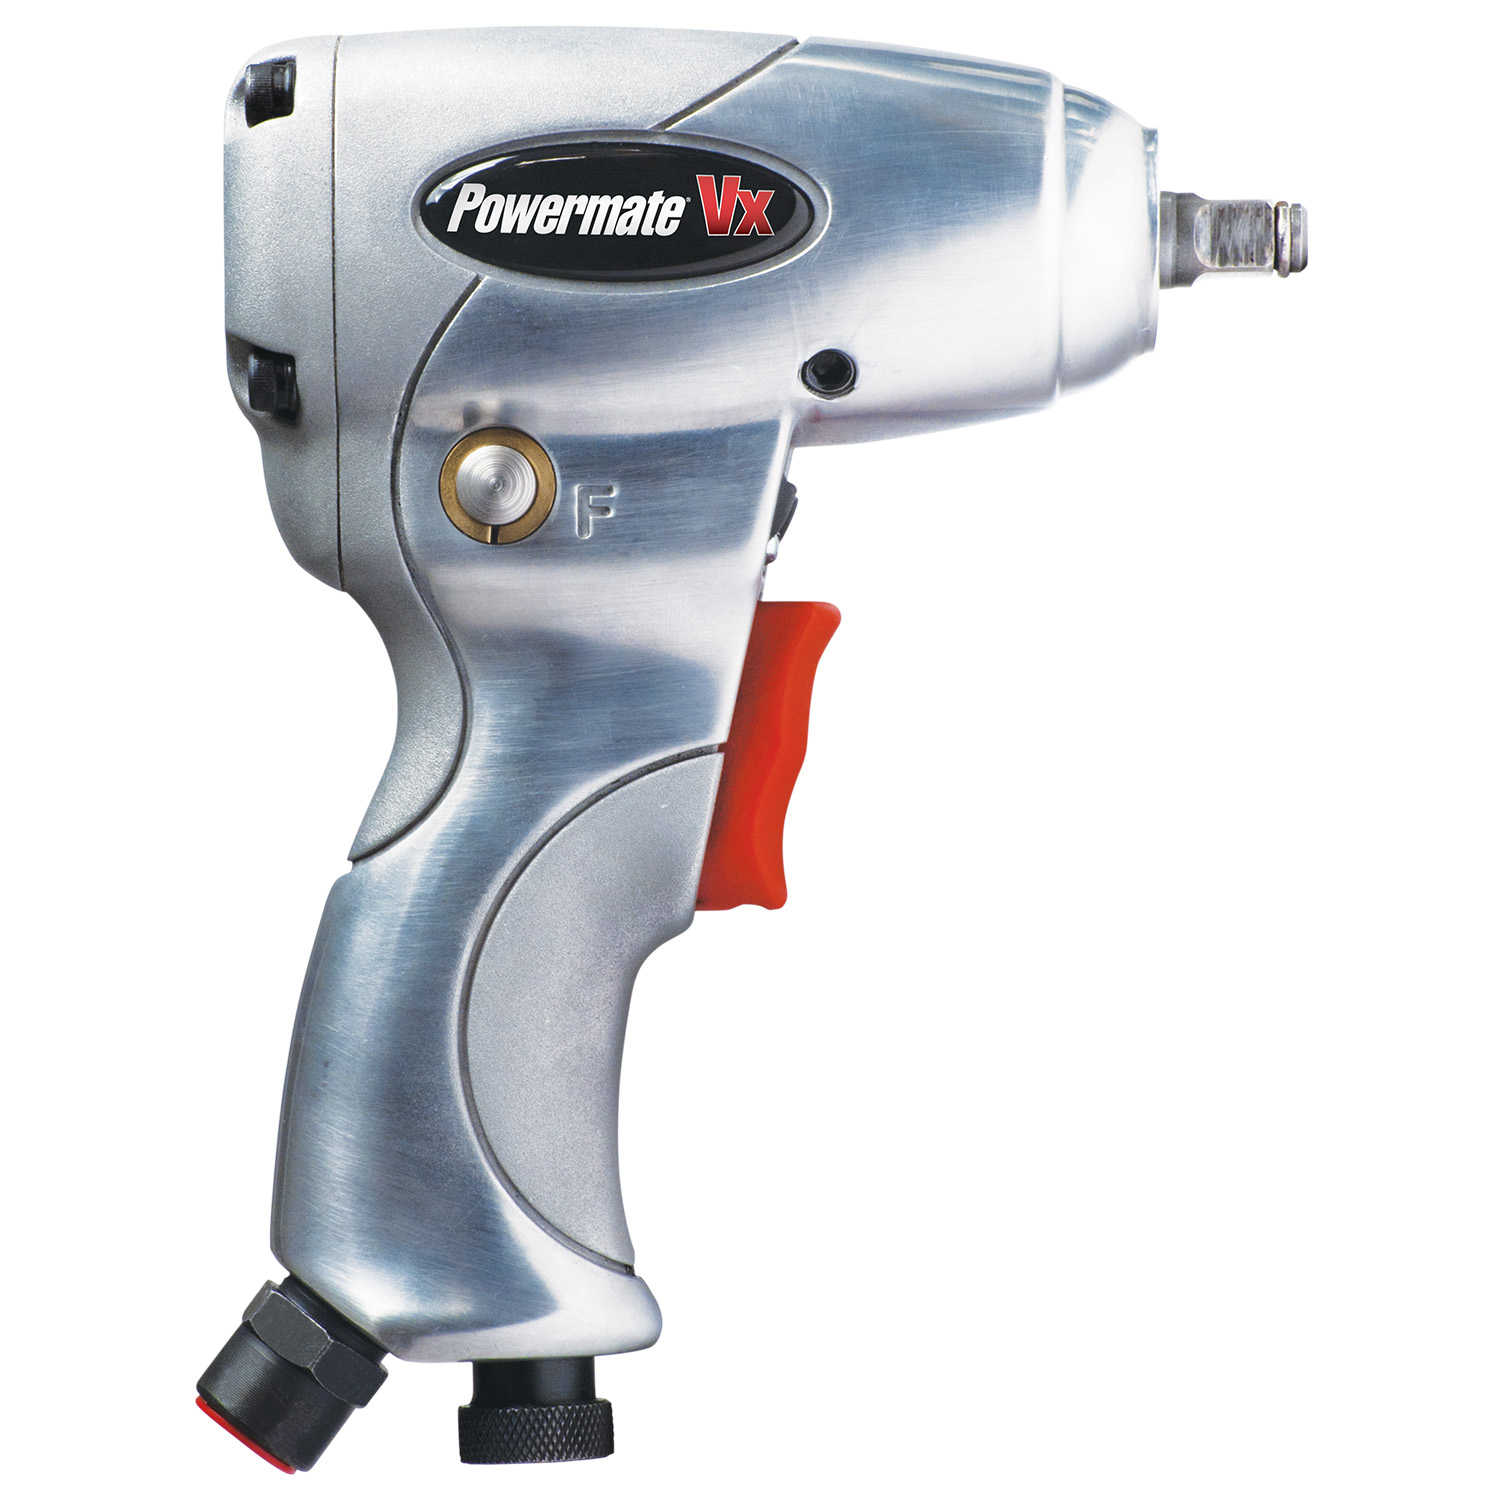 Powermate 3/8 in. Air Impact Wrench